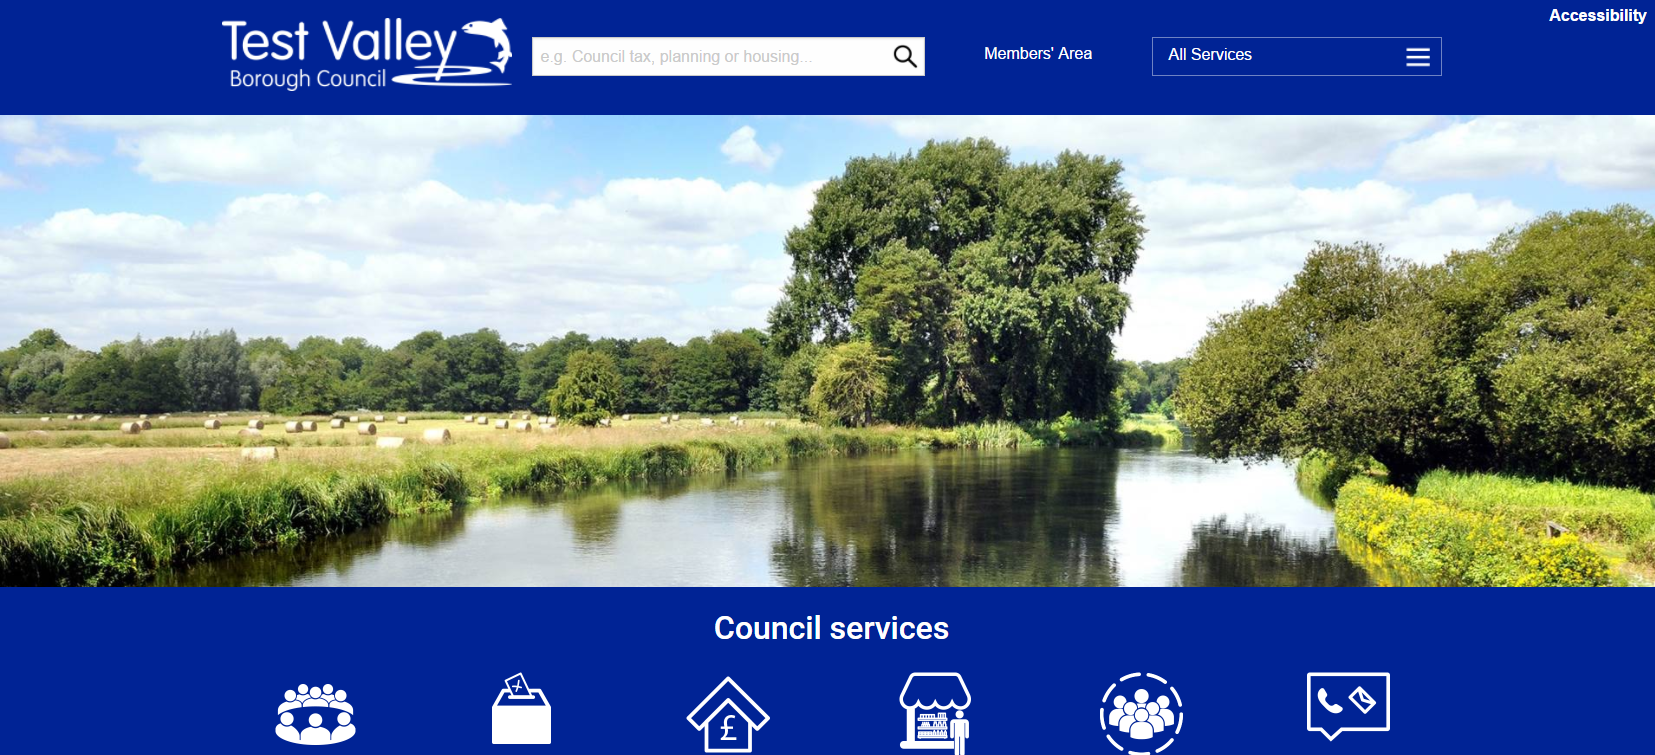 Andover Business News | New responsive website for Test Valley Borough Council | Andover & Villages